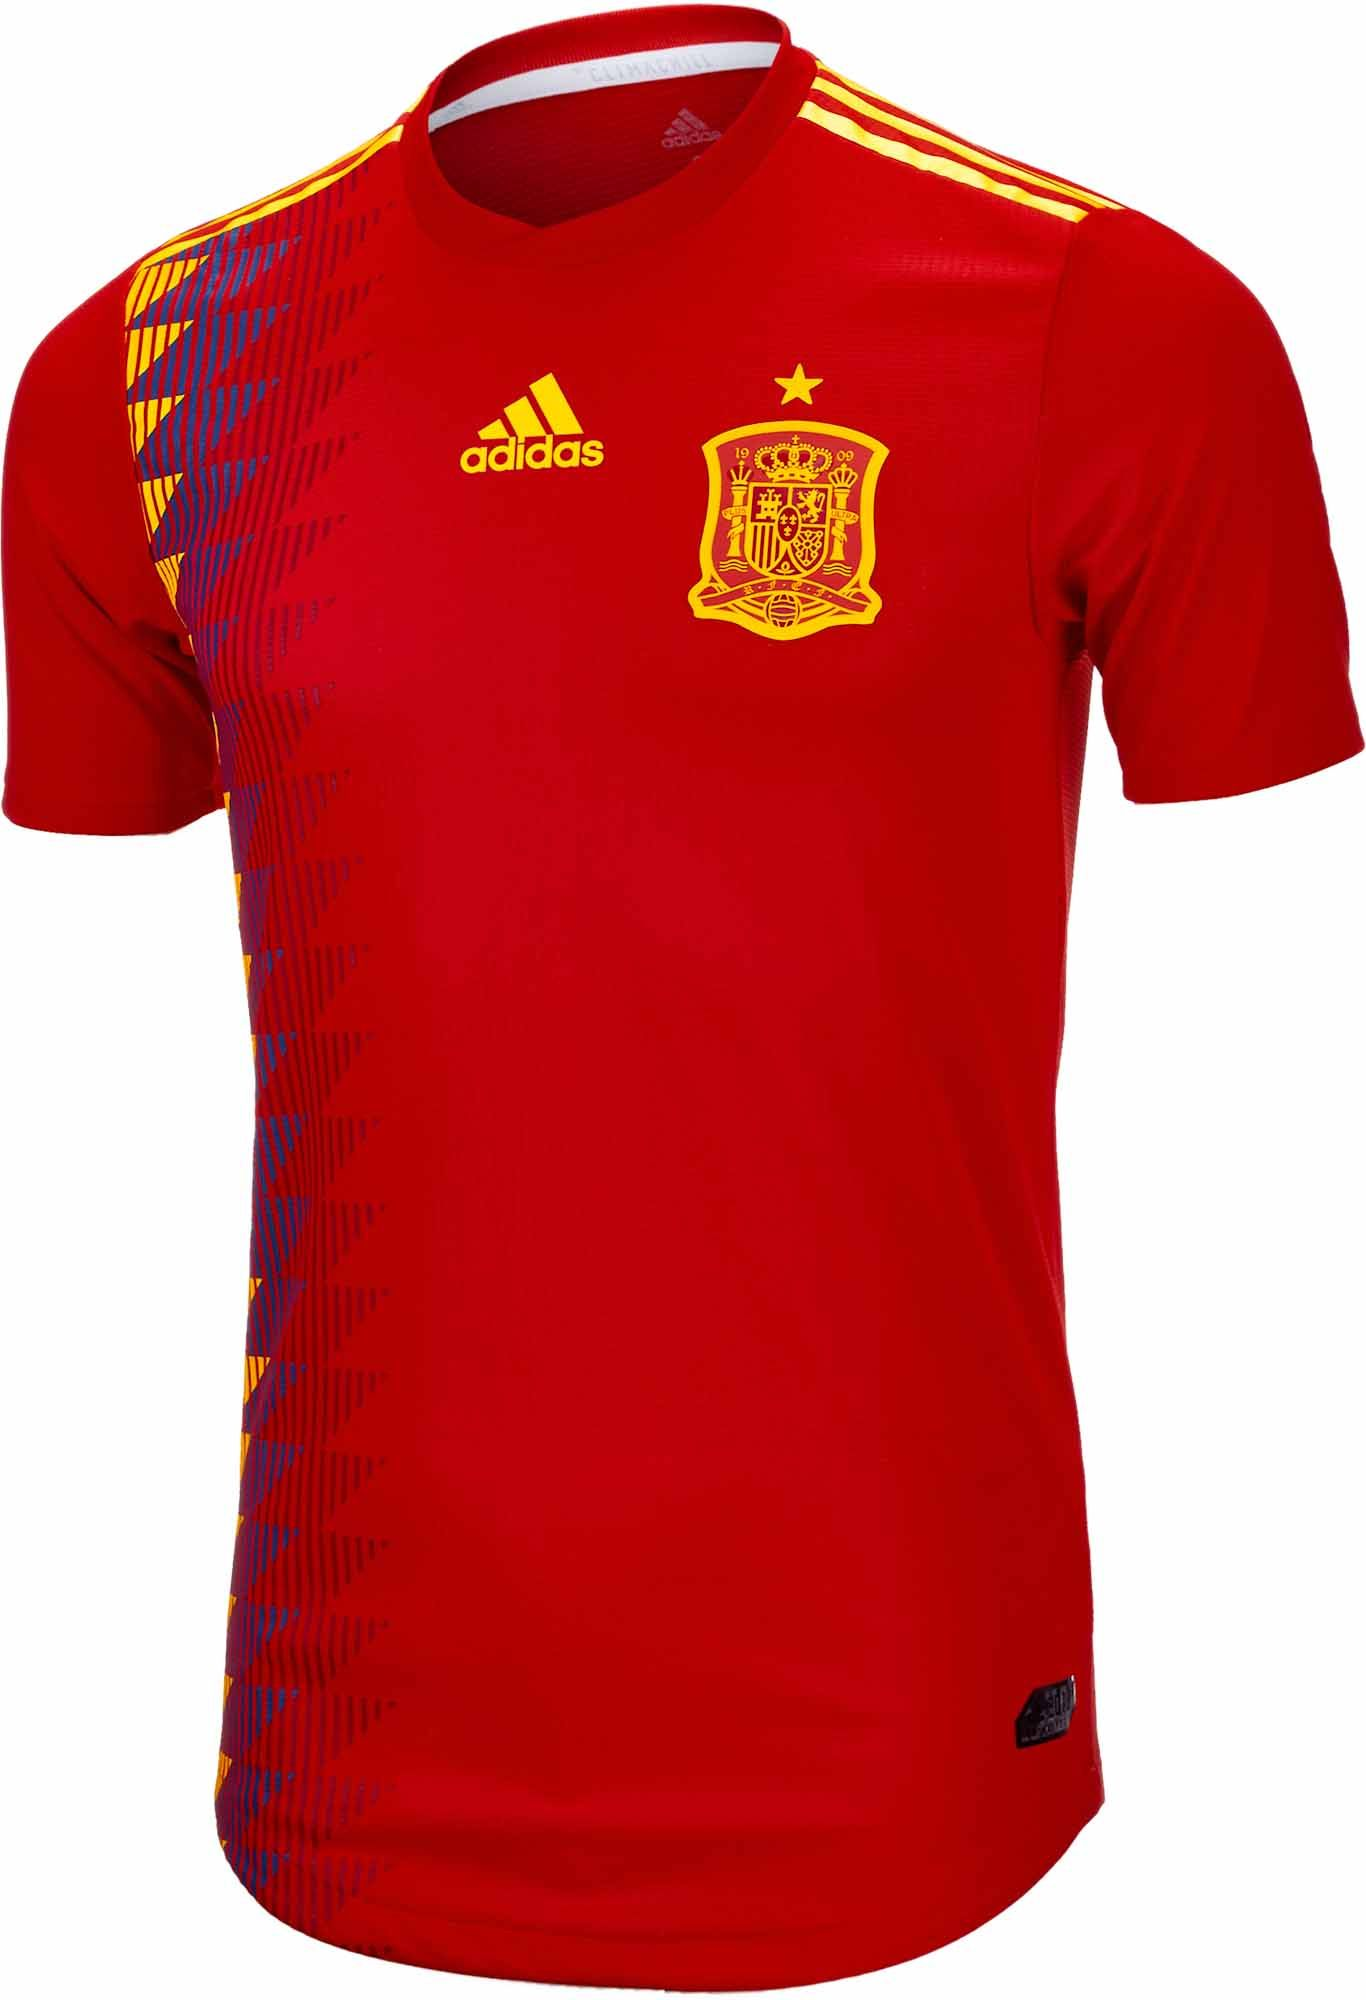 be9d8e19709 Buy the 2018/19 adidas Spain authentic home jersey from SoccerPro today!